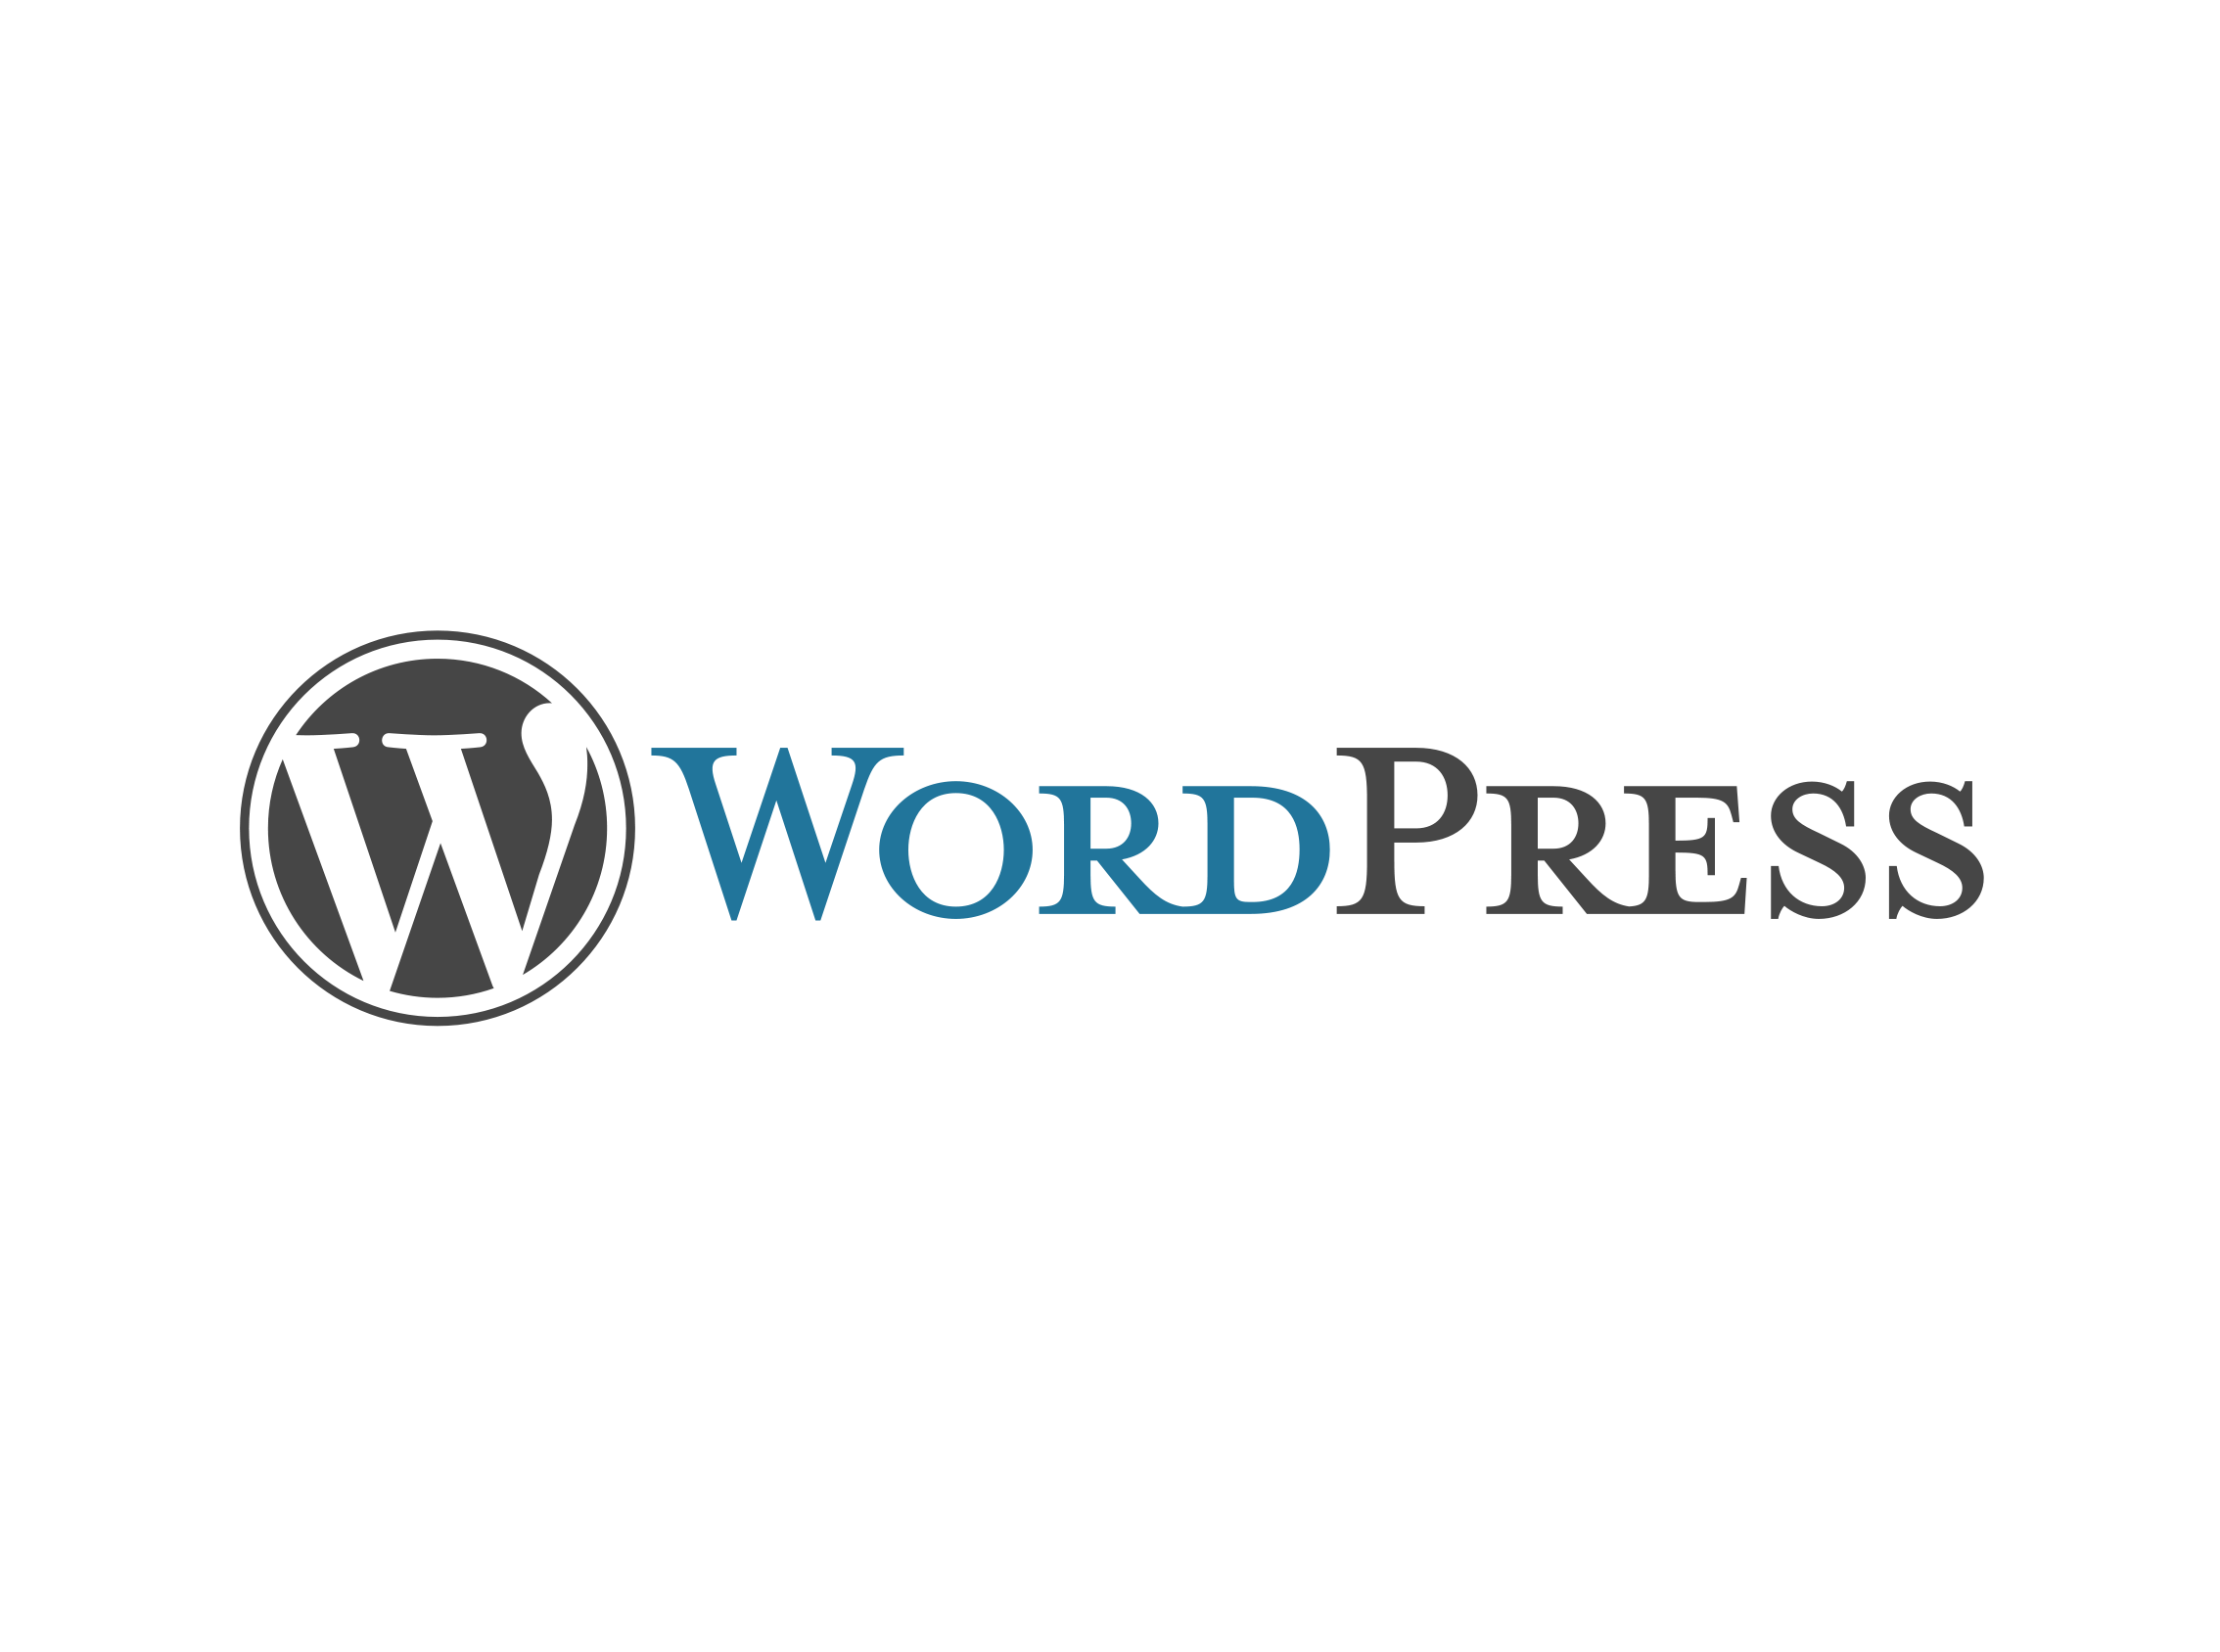 wordpress logo logok #29015